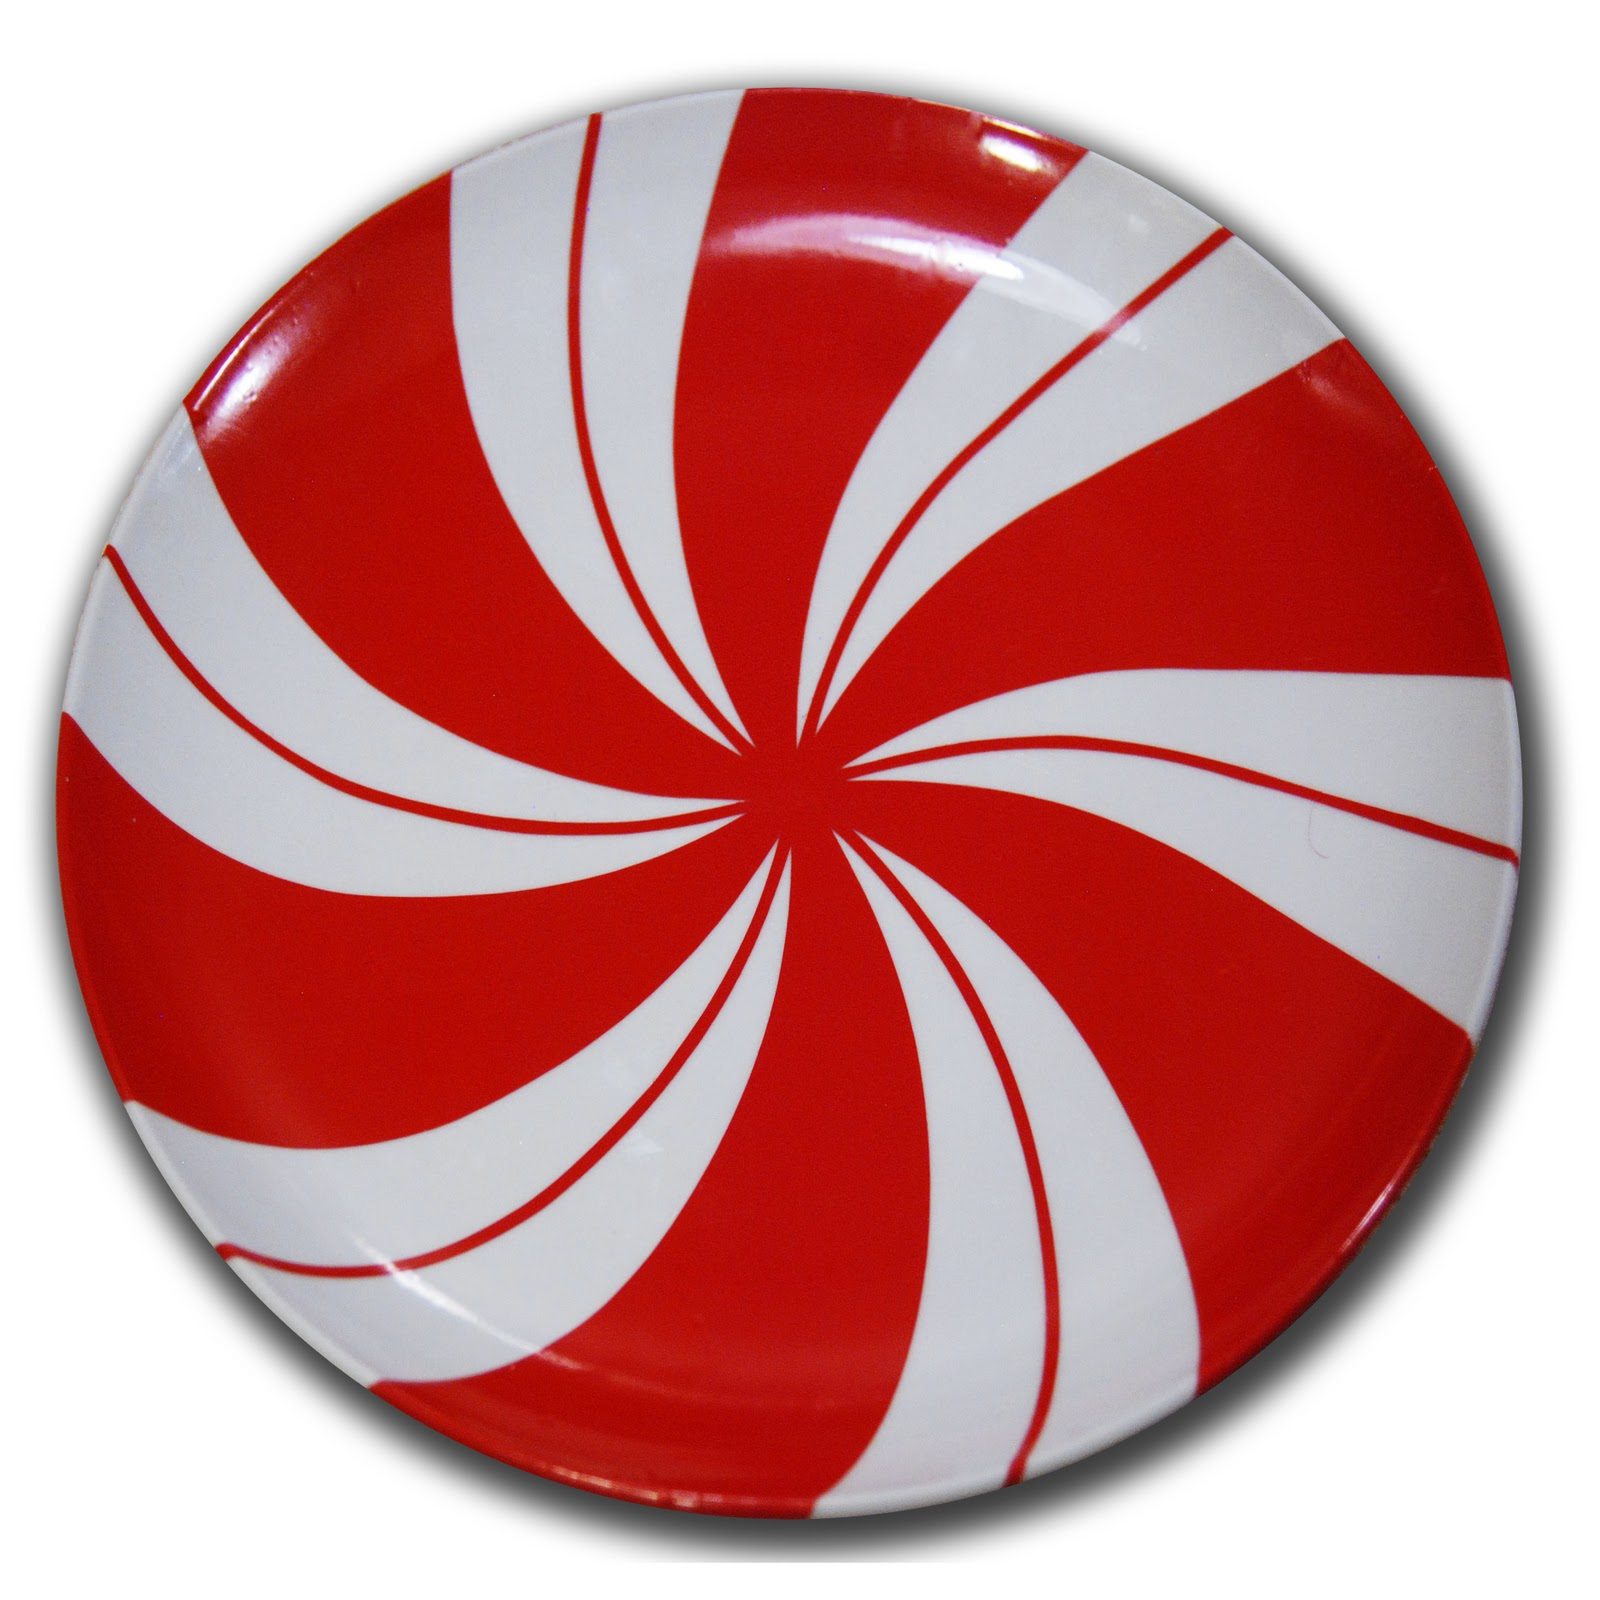 Free Peppermint Candy, Download Free Clip Art, Free Clip Art.